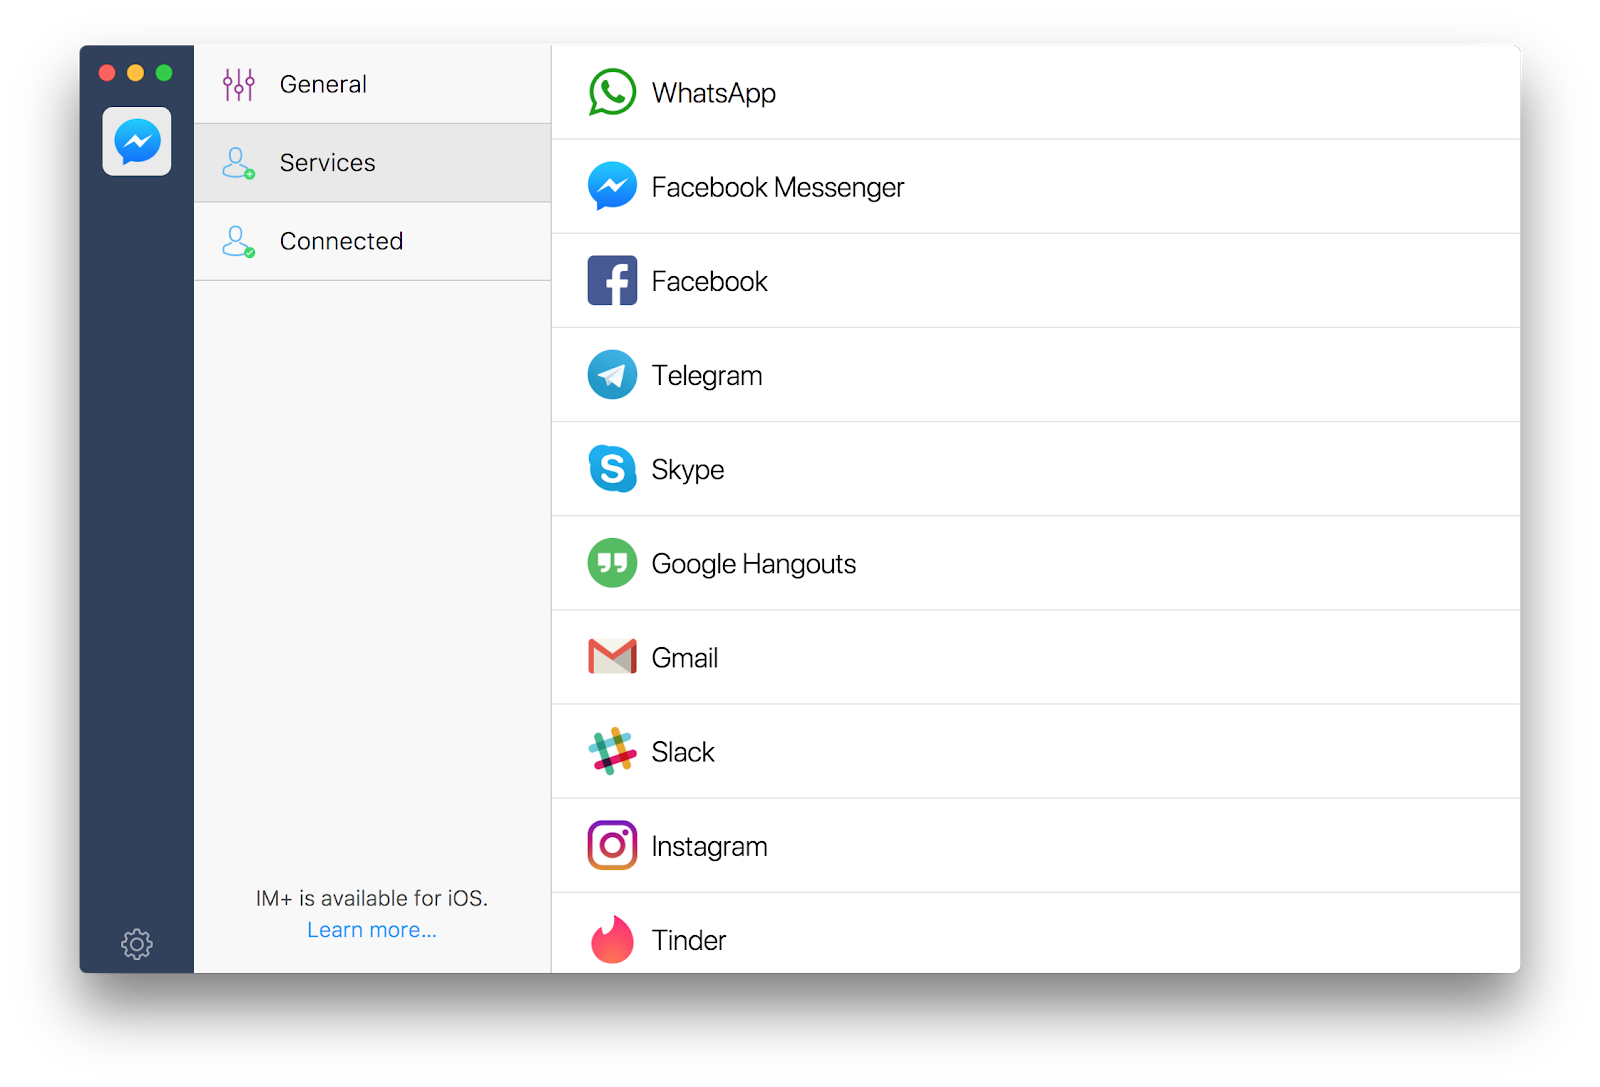 IM+ messaging client